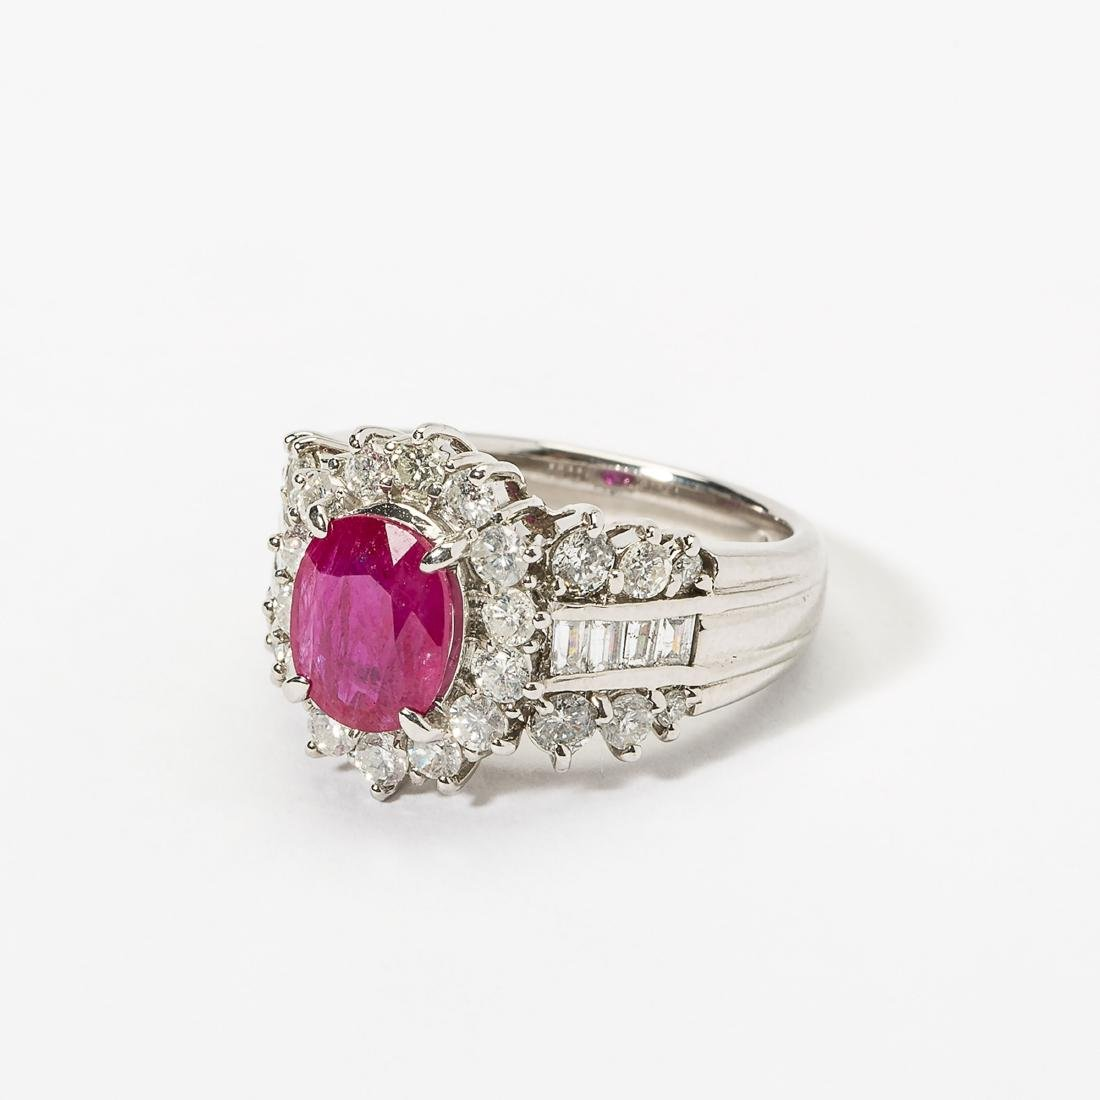 A platinum, diamond and ruby ring